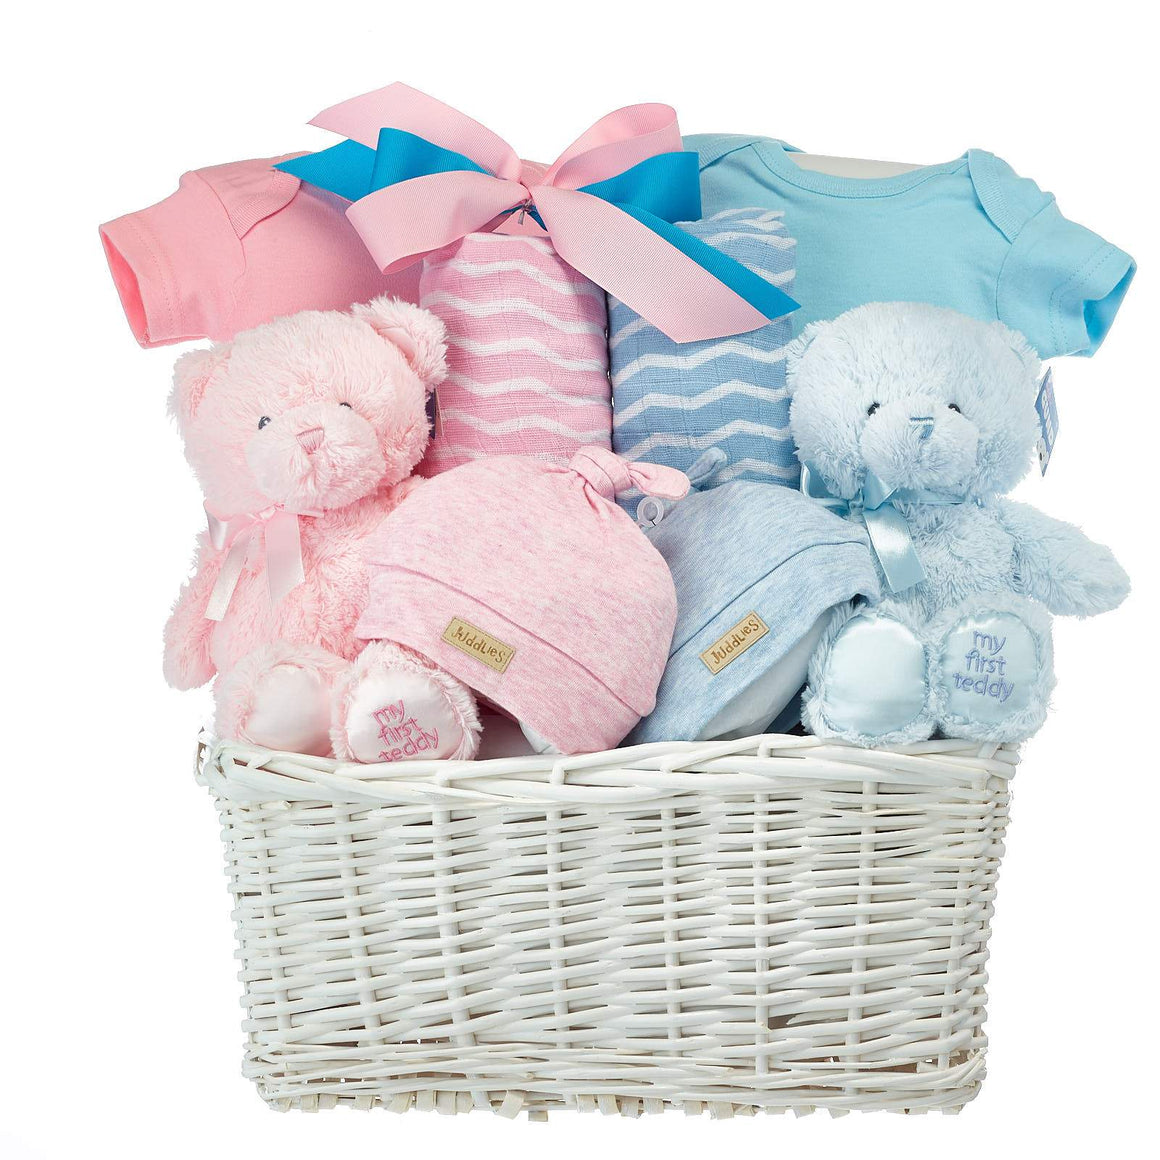 3ff9aebca Baby Gift Baskets FREE Toronto Same Day Delivery